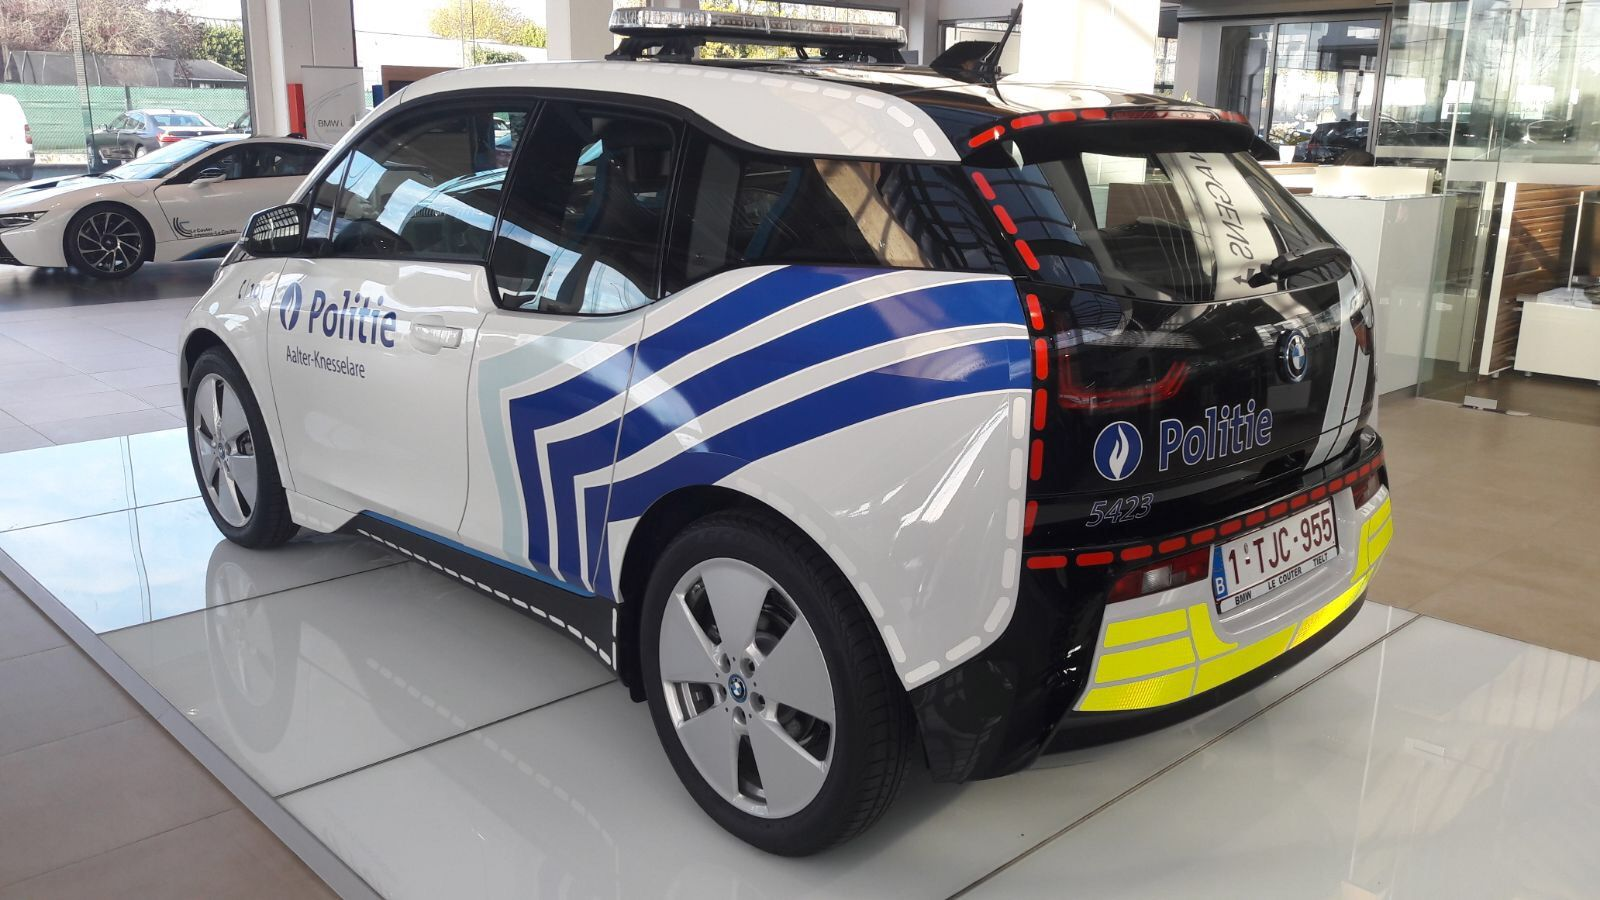 en belgique la police adopte la citadine lectrique bmw i3 voitures lectriques electrique. Black Bedroom Furniture Sets. Home Design Ideas